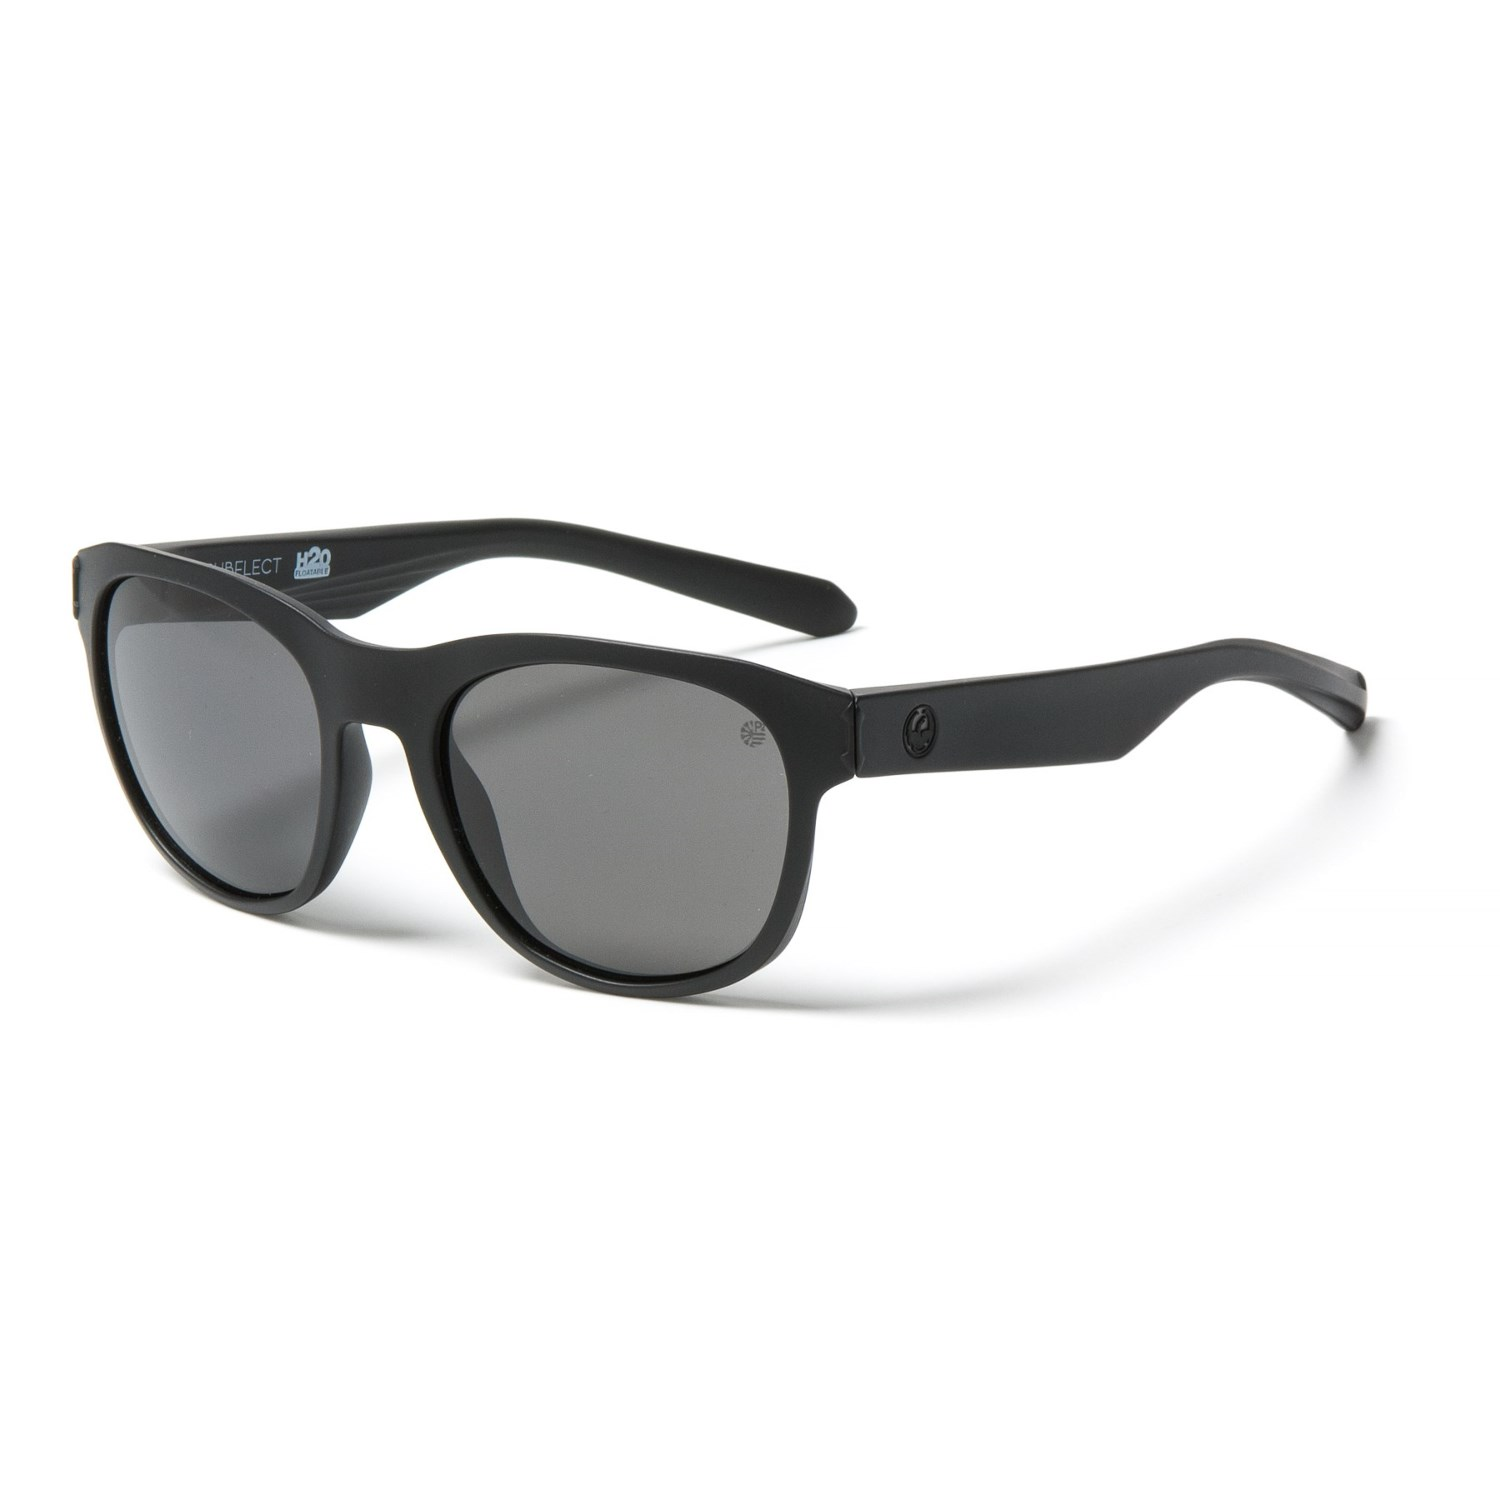 Ray Ban Black Metal Round 1 (One Size) Sunglasses 37% off retail